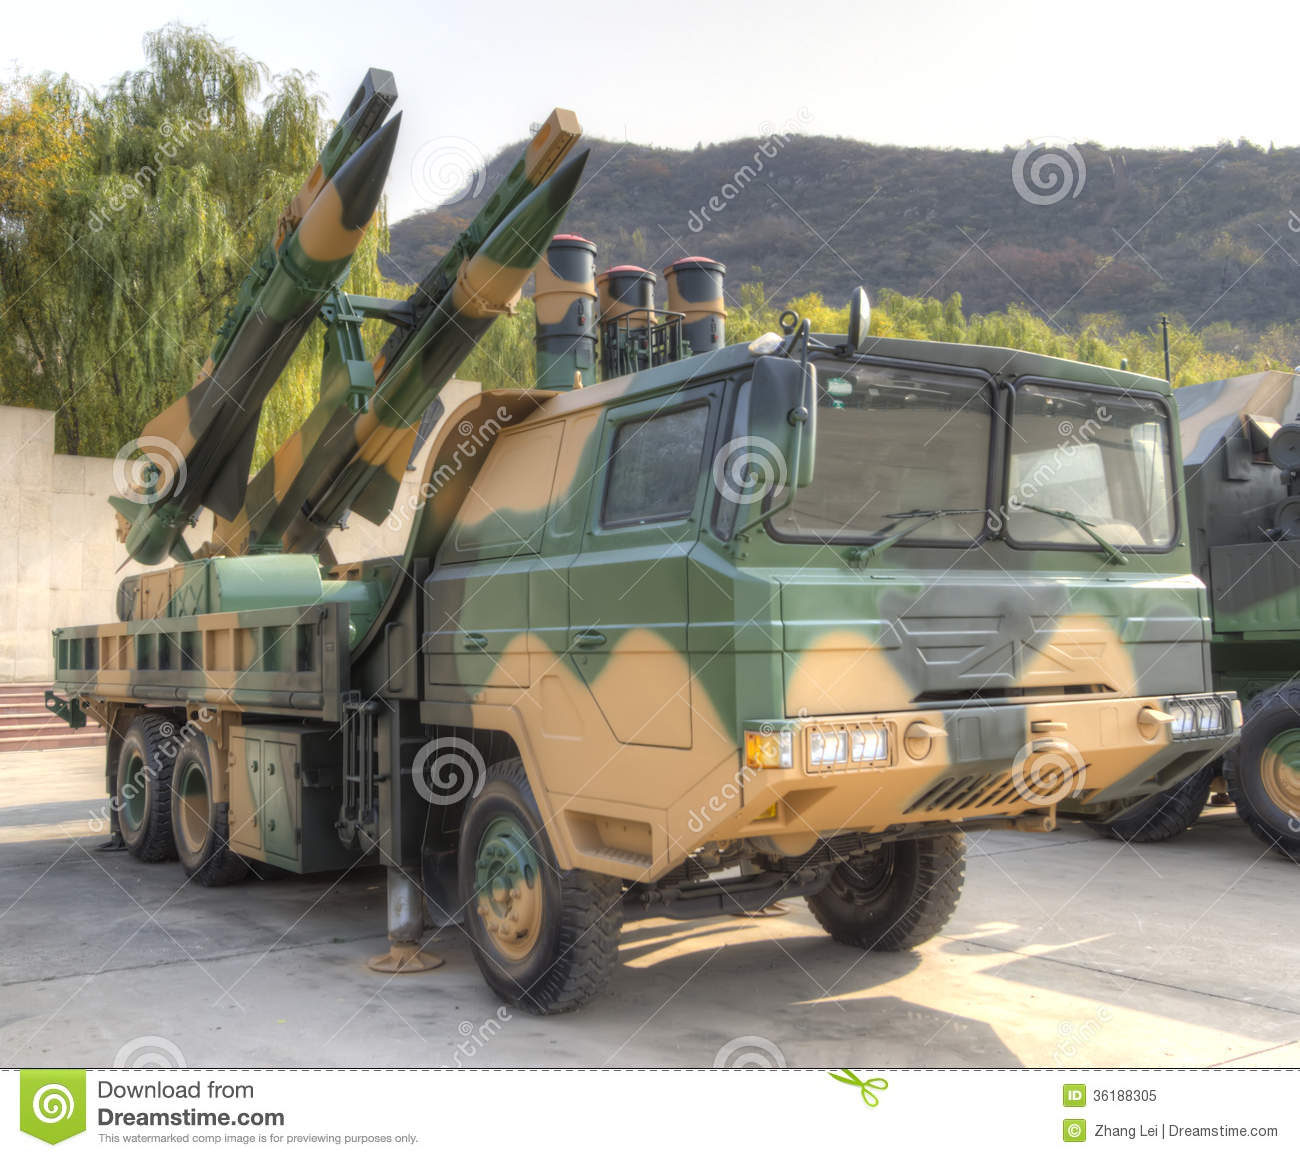 how to set up missile defense with mobile sams